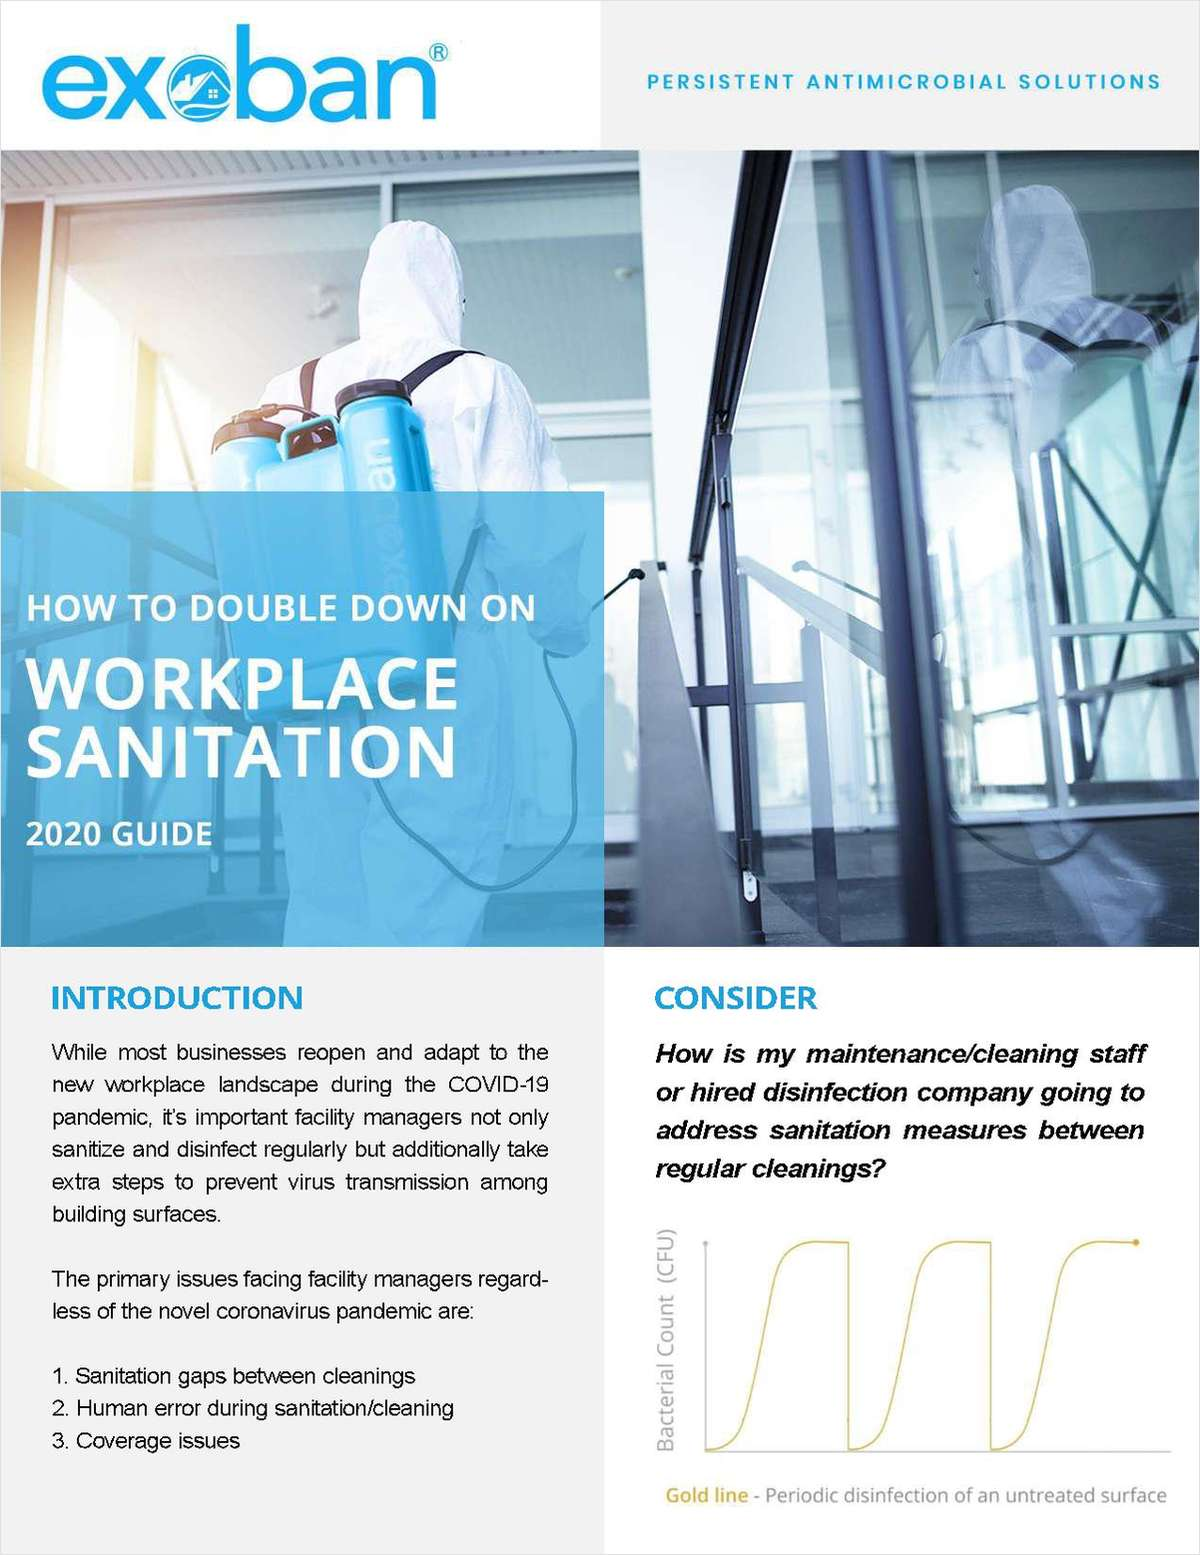 How To Double Down On Workplace Sanitation